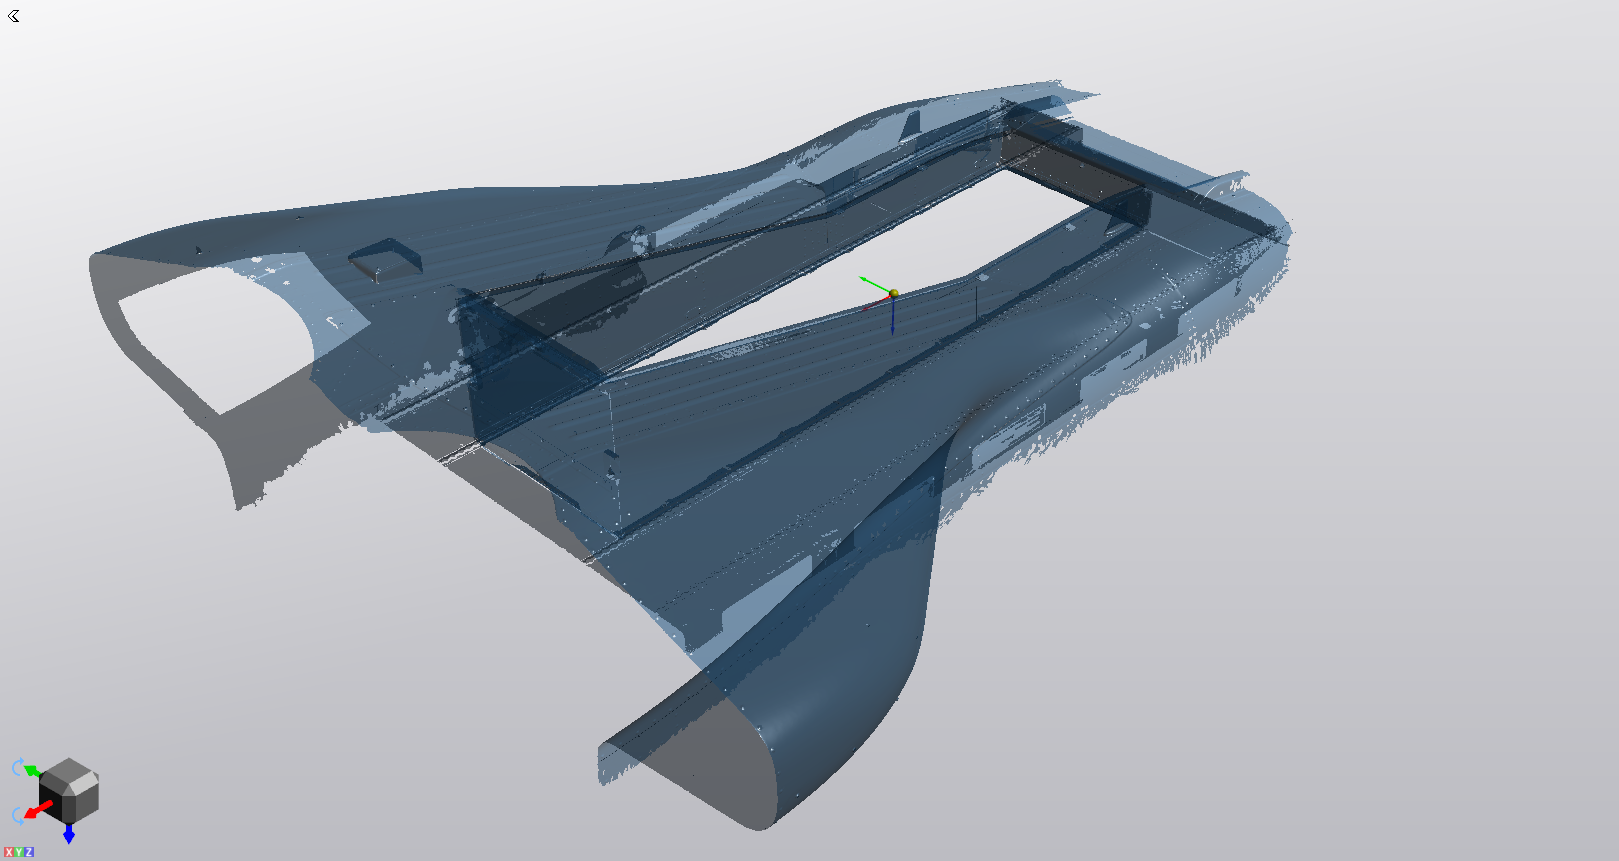 Scan of the fuselage and the floor hatch in the VXmodel software